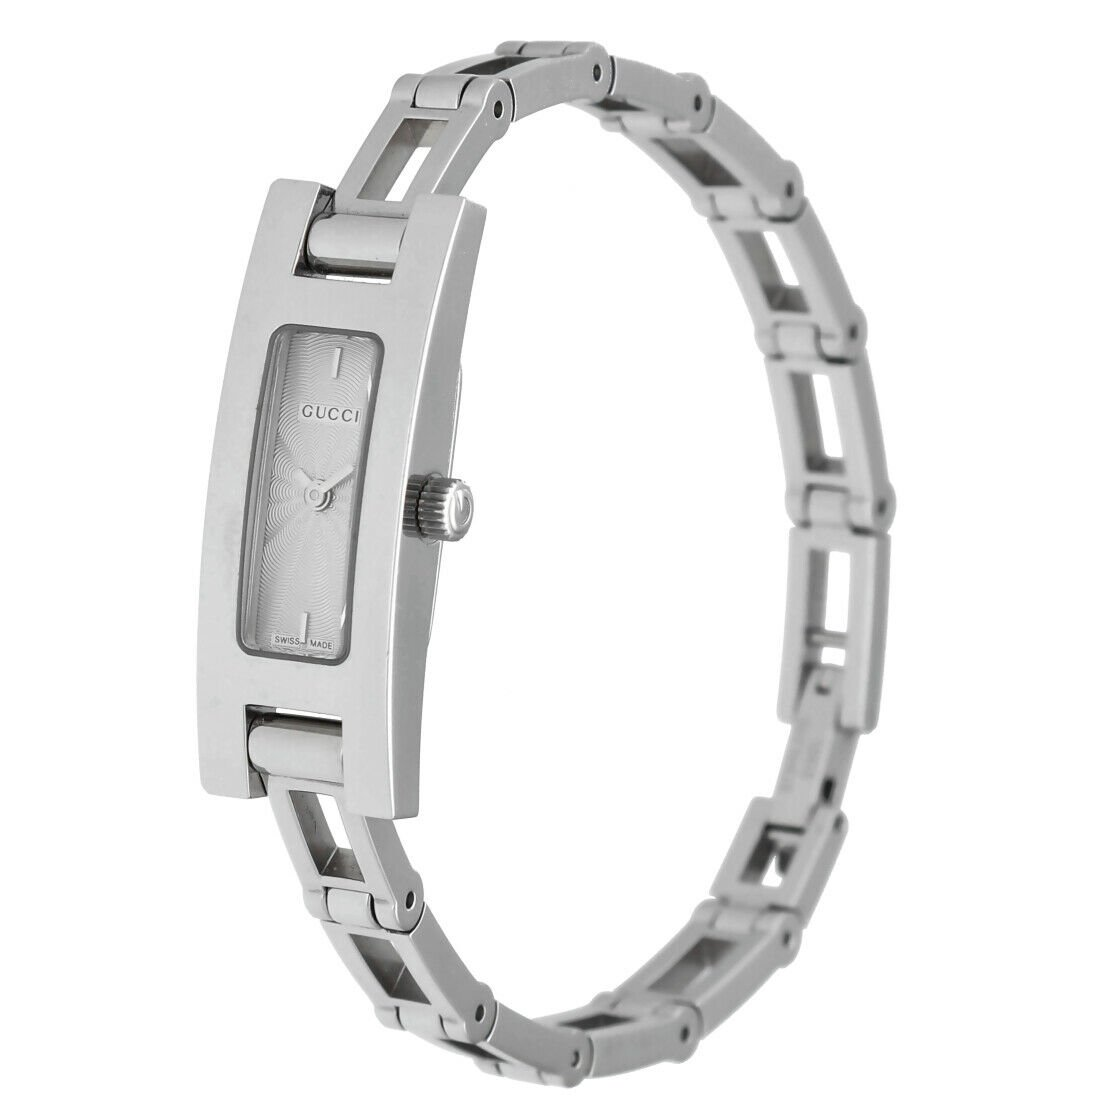 Gucci 3900L Stainless Steel Silver Dial Rectangle Swiss Quartz Womens Watch 133538249984 2